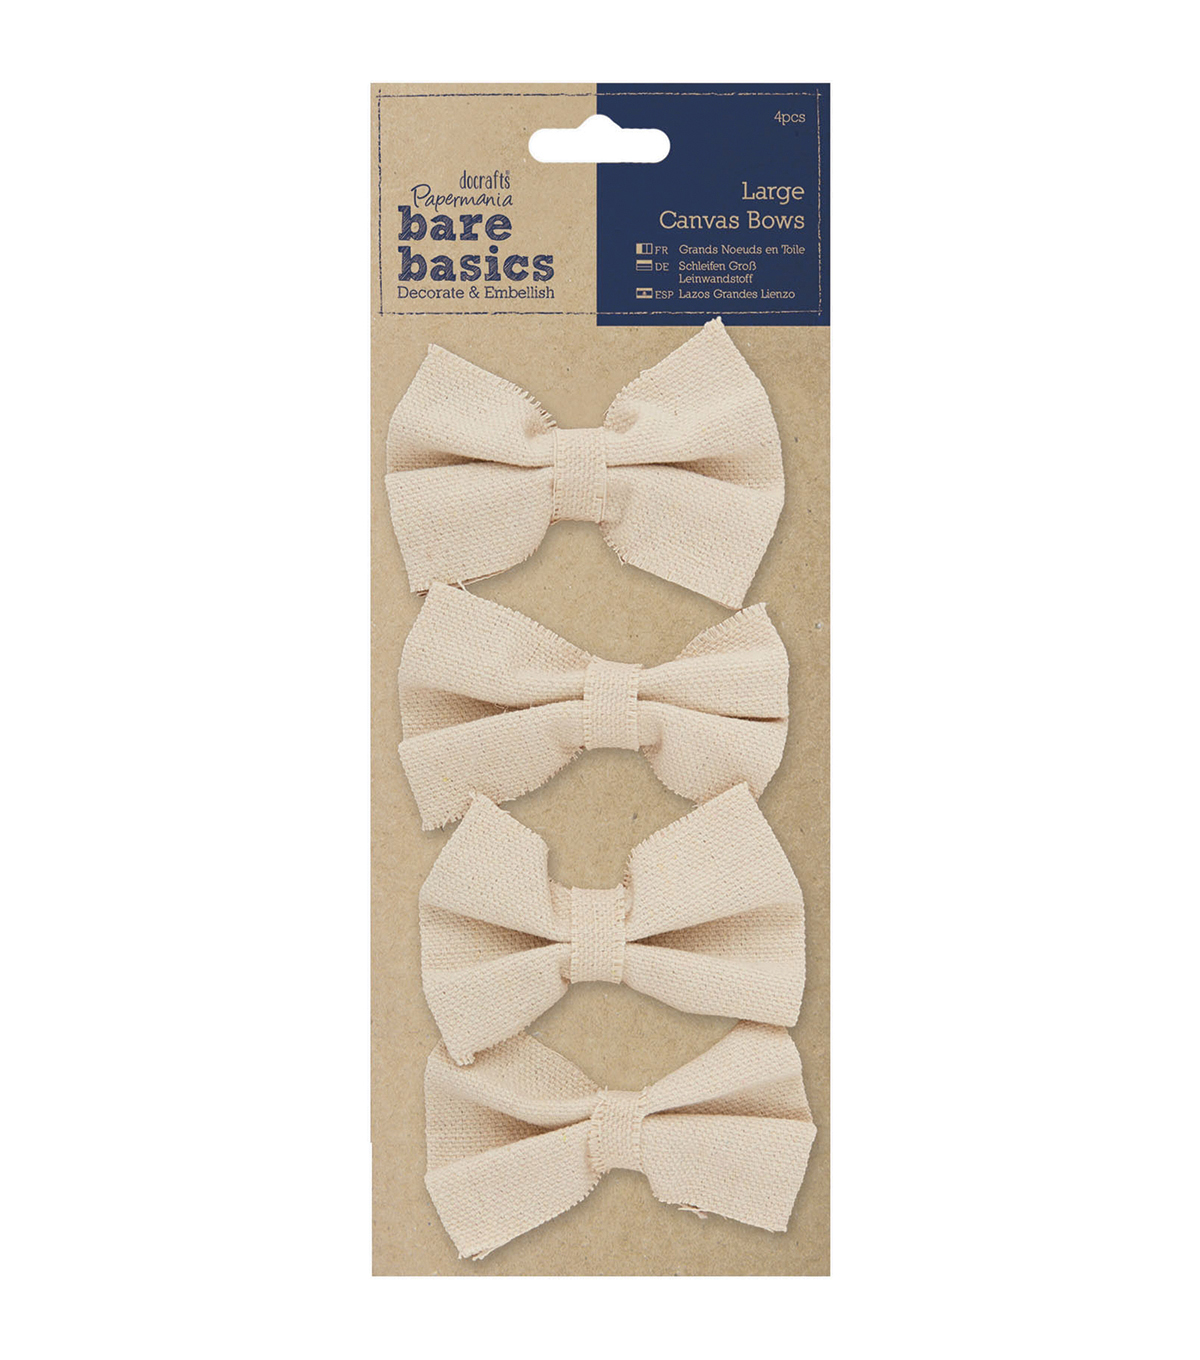 Papermania Bare Basics Canvas Large Bows